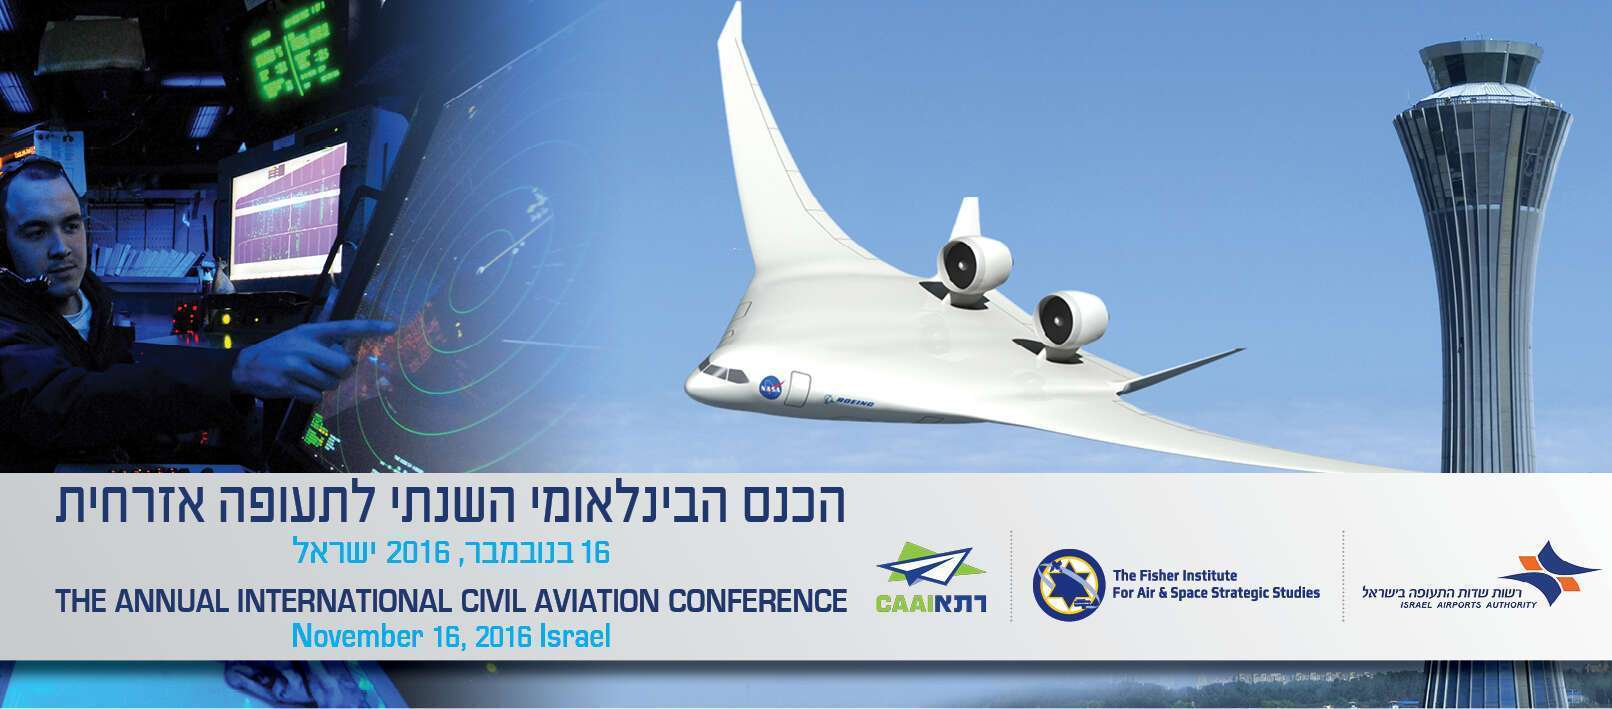 The Annual International Civil Aviation Conference 2016, 16 November 2016, Israel